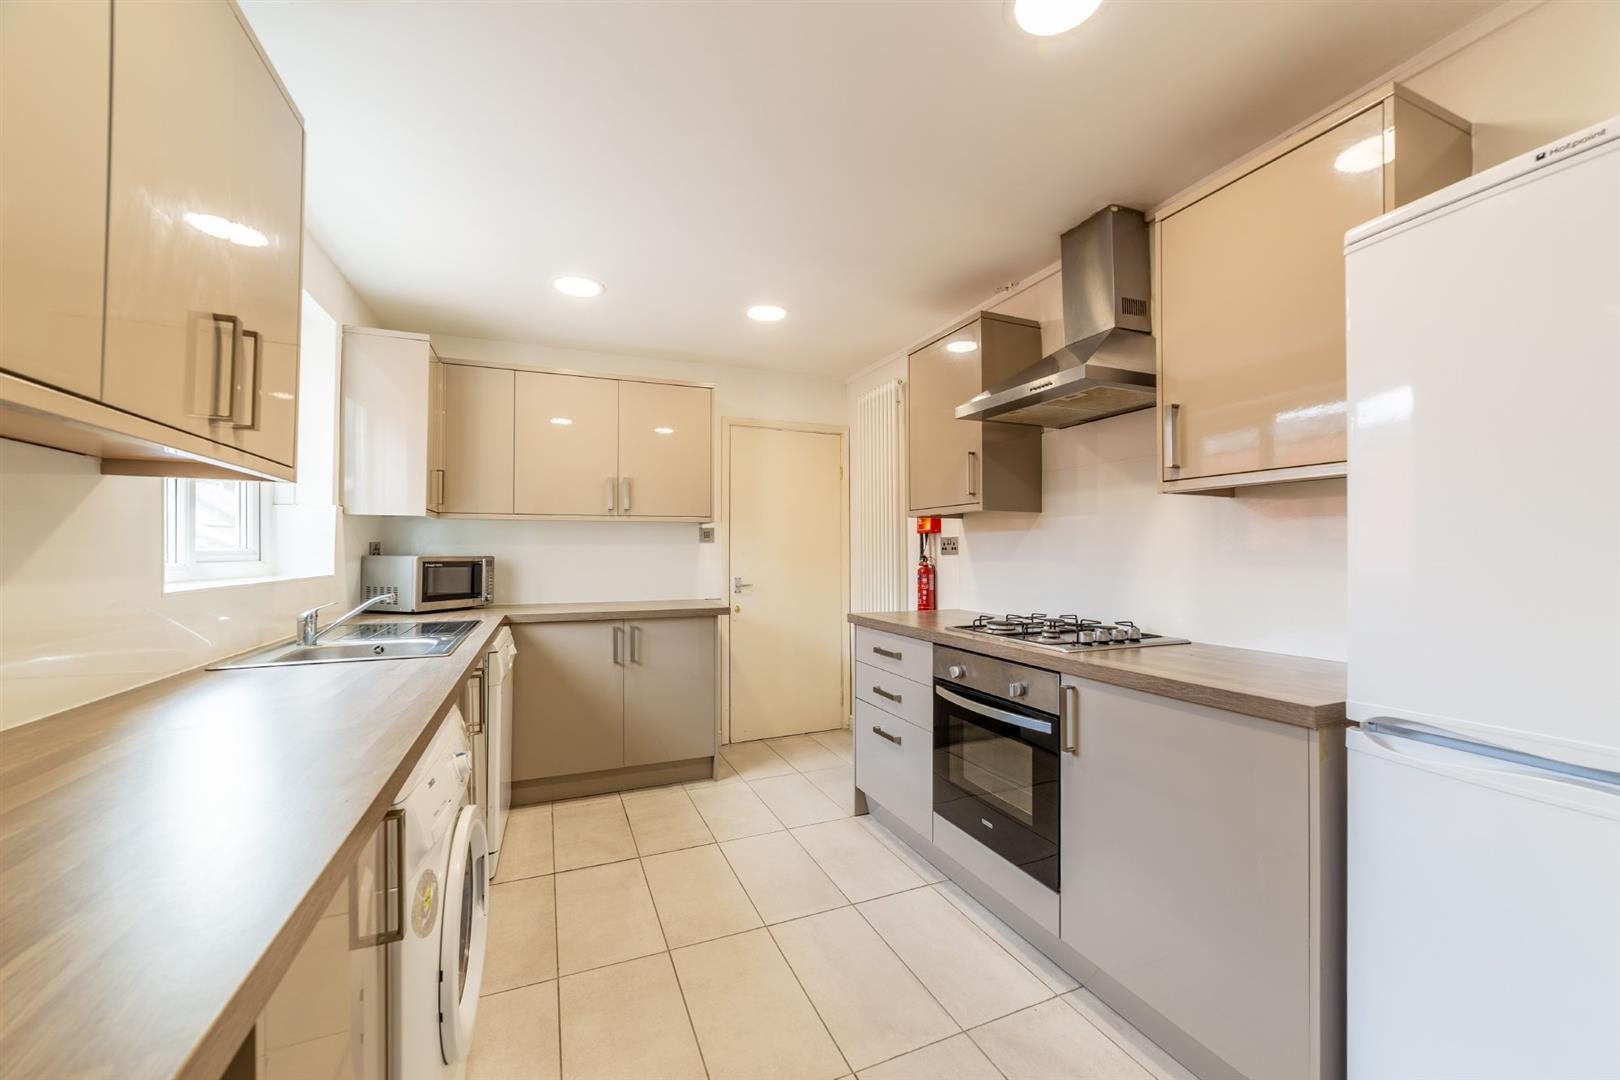 3 bed flat to rent in Ancrum Street, Spital Tongues, NE2